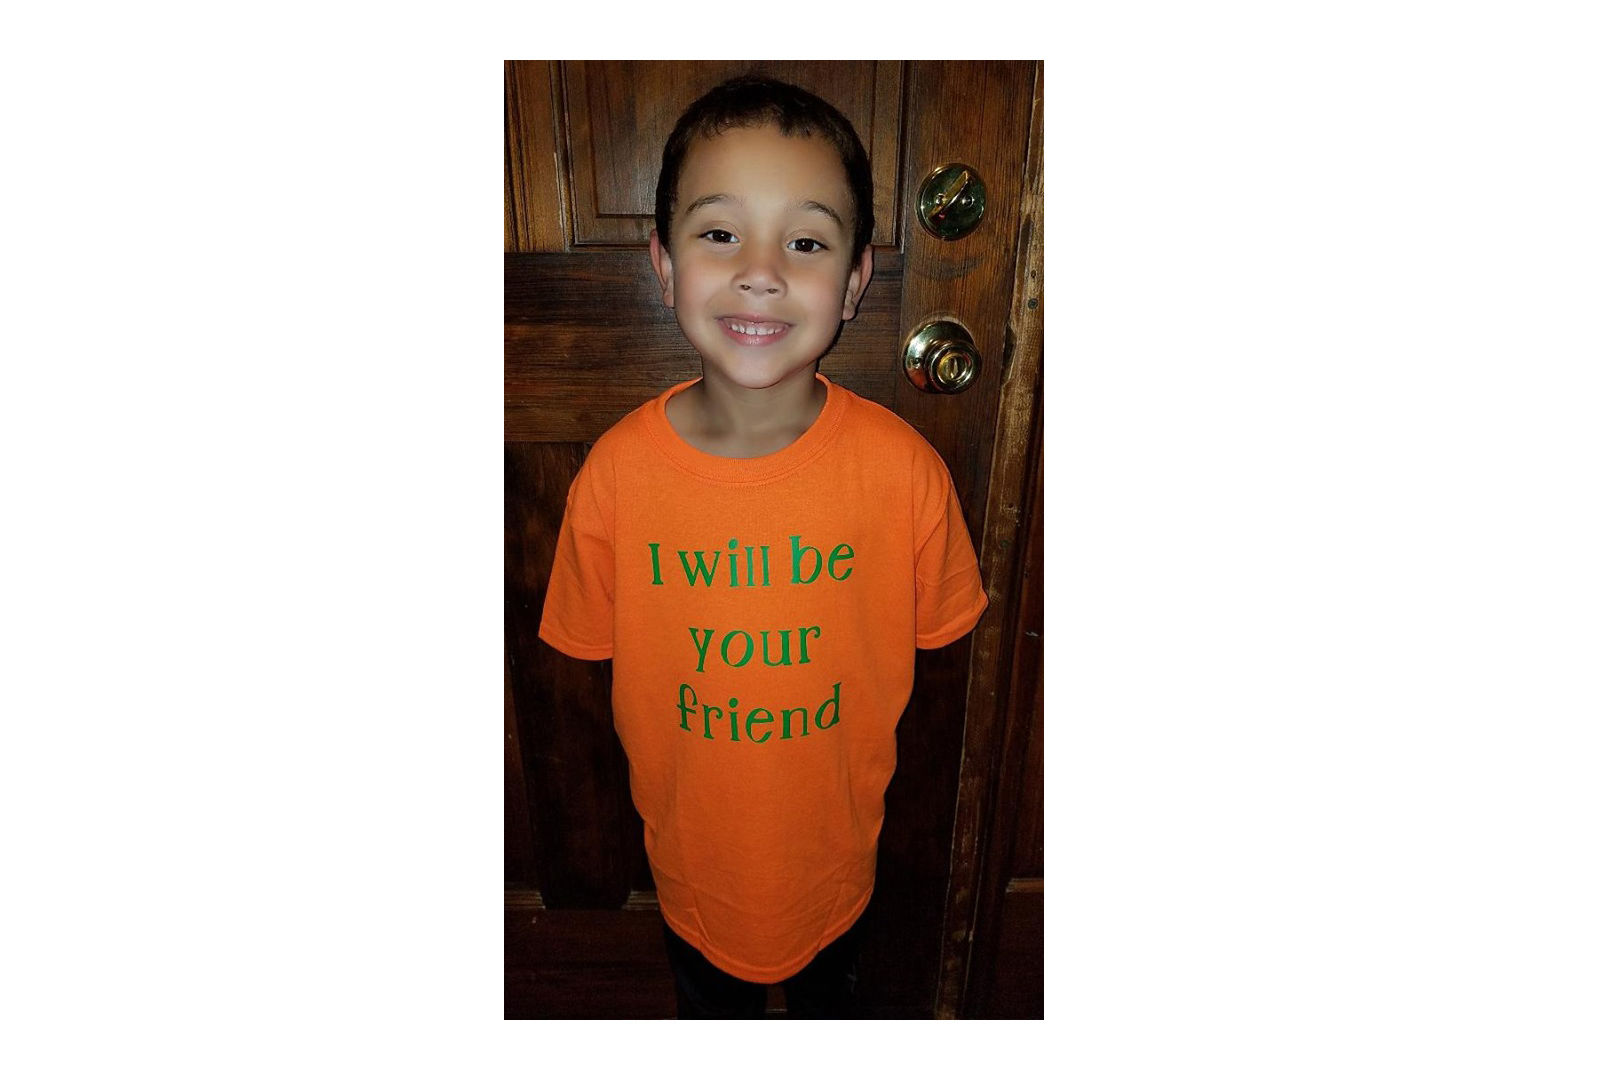 One Georgia 6-Year-Old is Heading Back to School with a Very Important Message